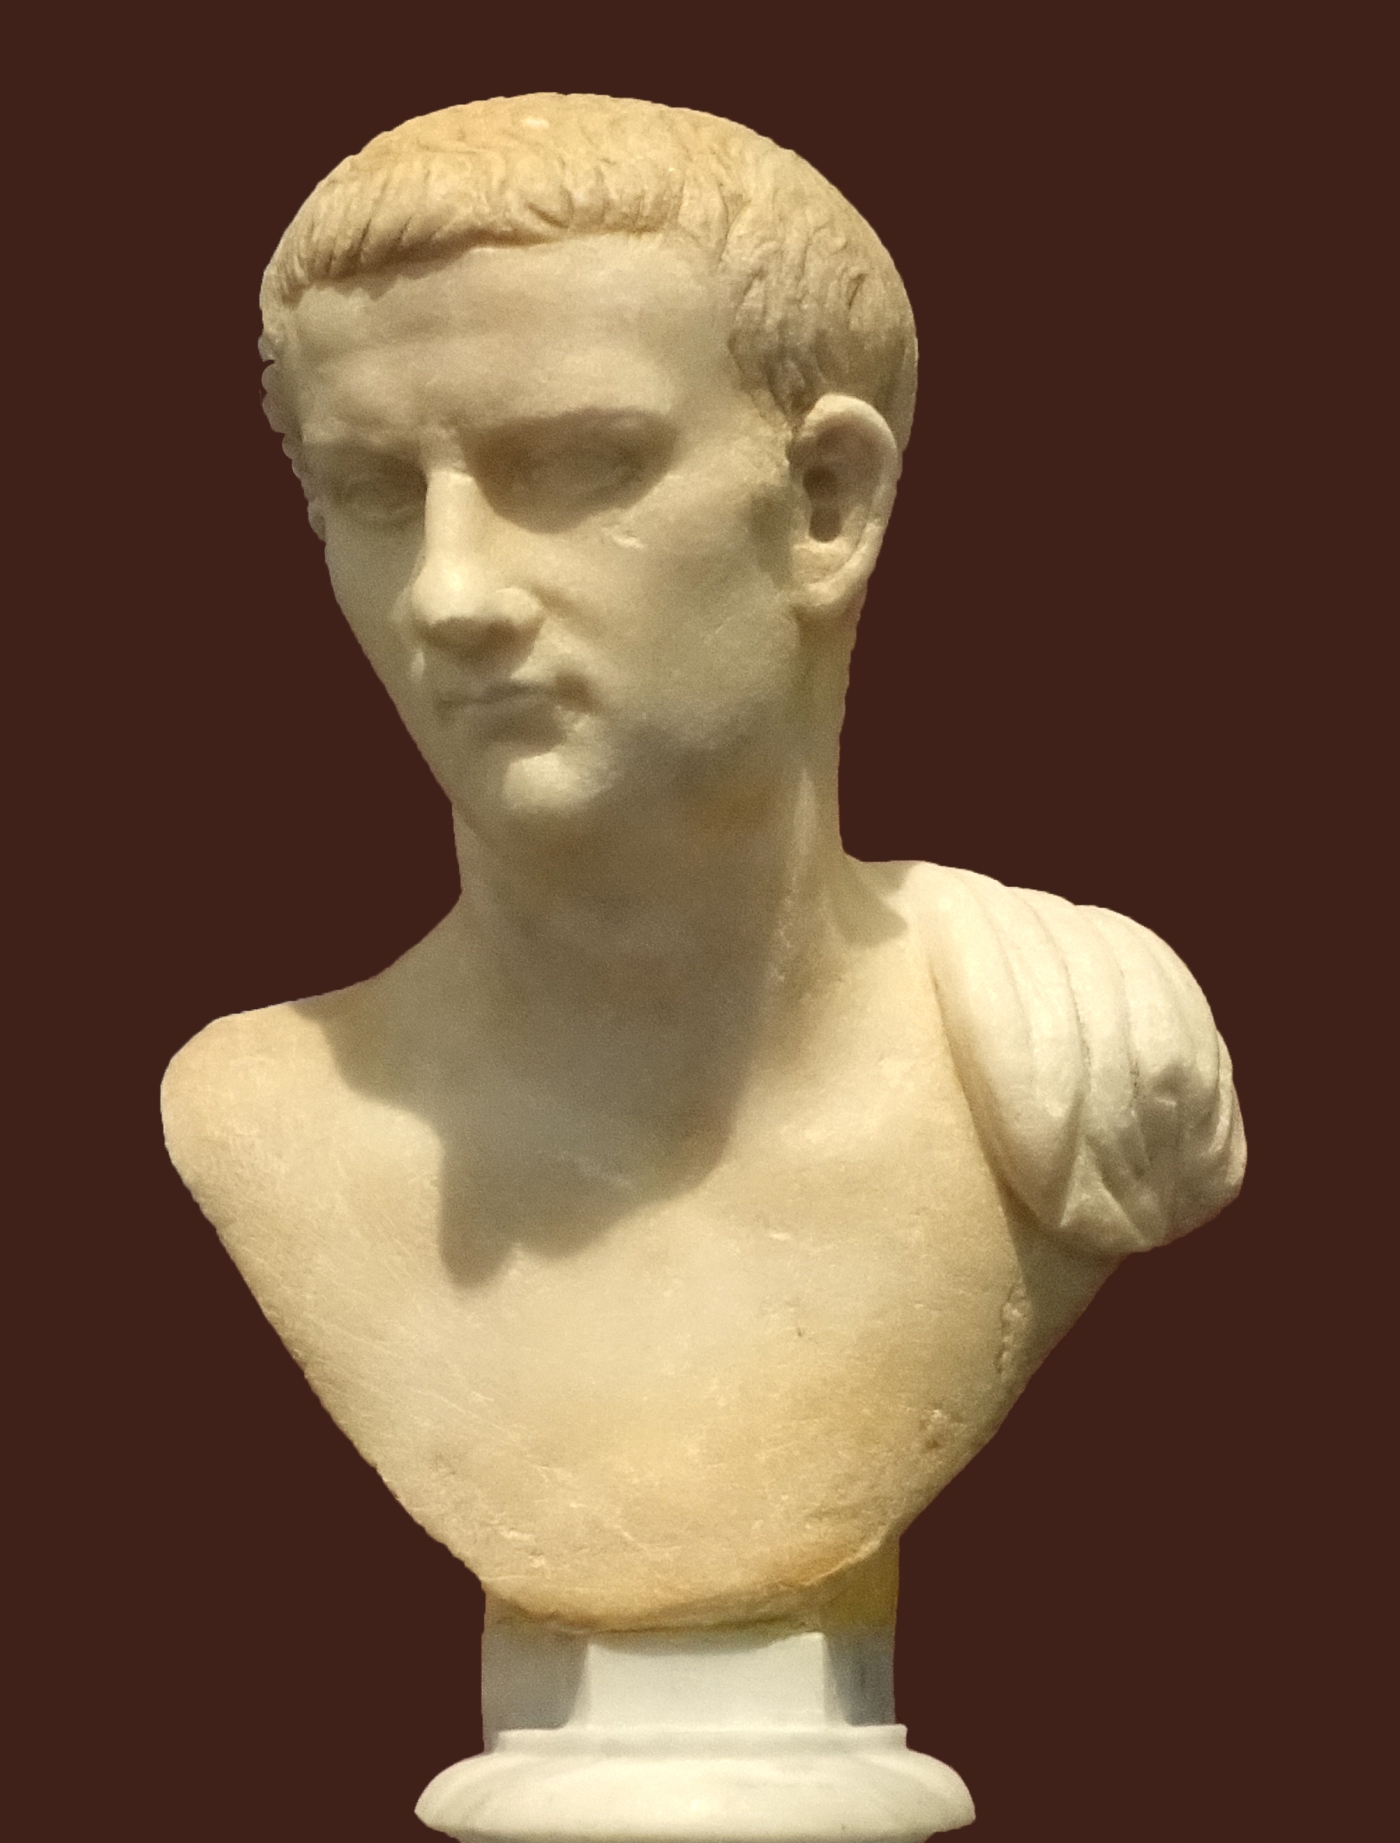 a biography of caligula the emperor of rome The emperor caligula had nero's mother exiled from rome and sent nero to be raised by his aunt caligula also stole nero's inheritance a few years later, however, caligula was killed and claudius became emperor.